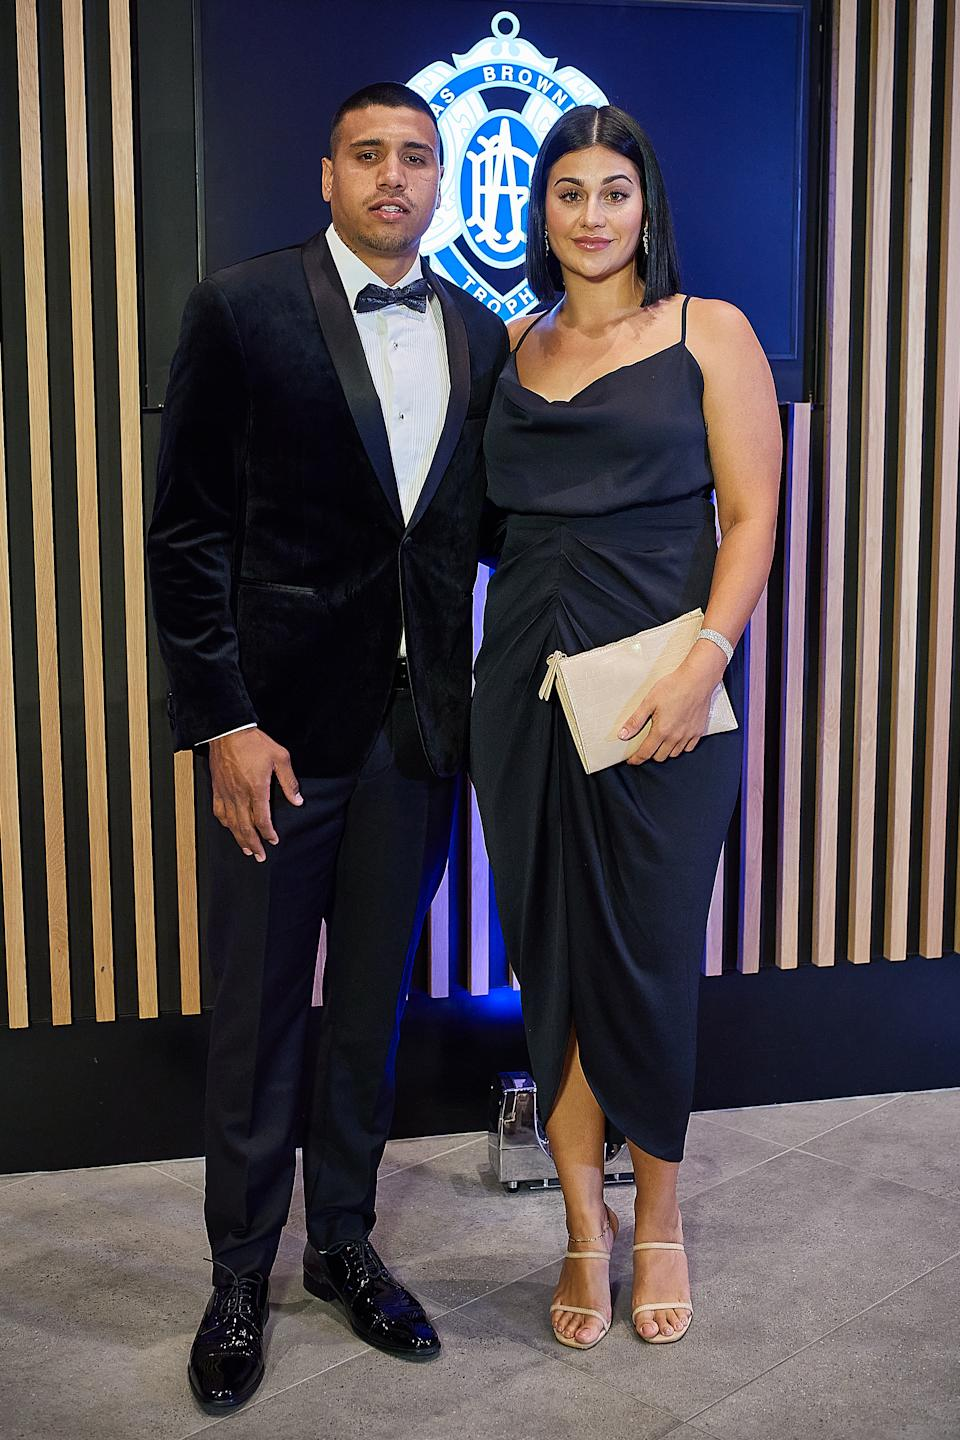 Tim Kelly and wife Cailtin Miller pose for a photo during the 2020 Brownlow Medal Count at Optus Stadium on October 18, 2020 in Perth, Australia.